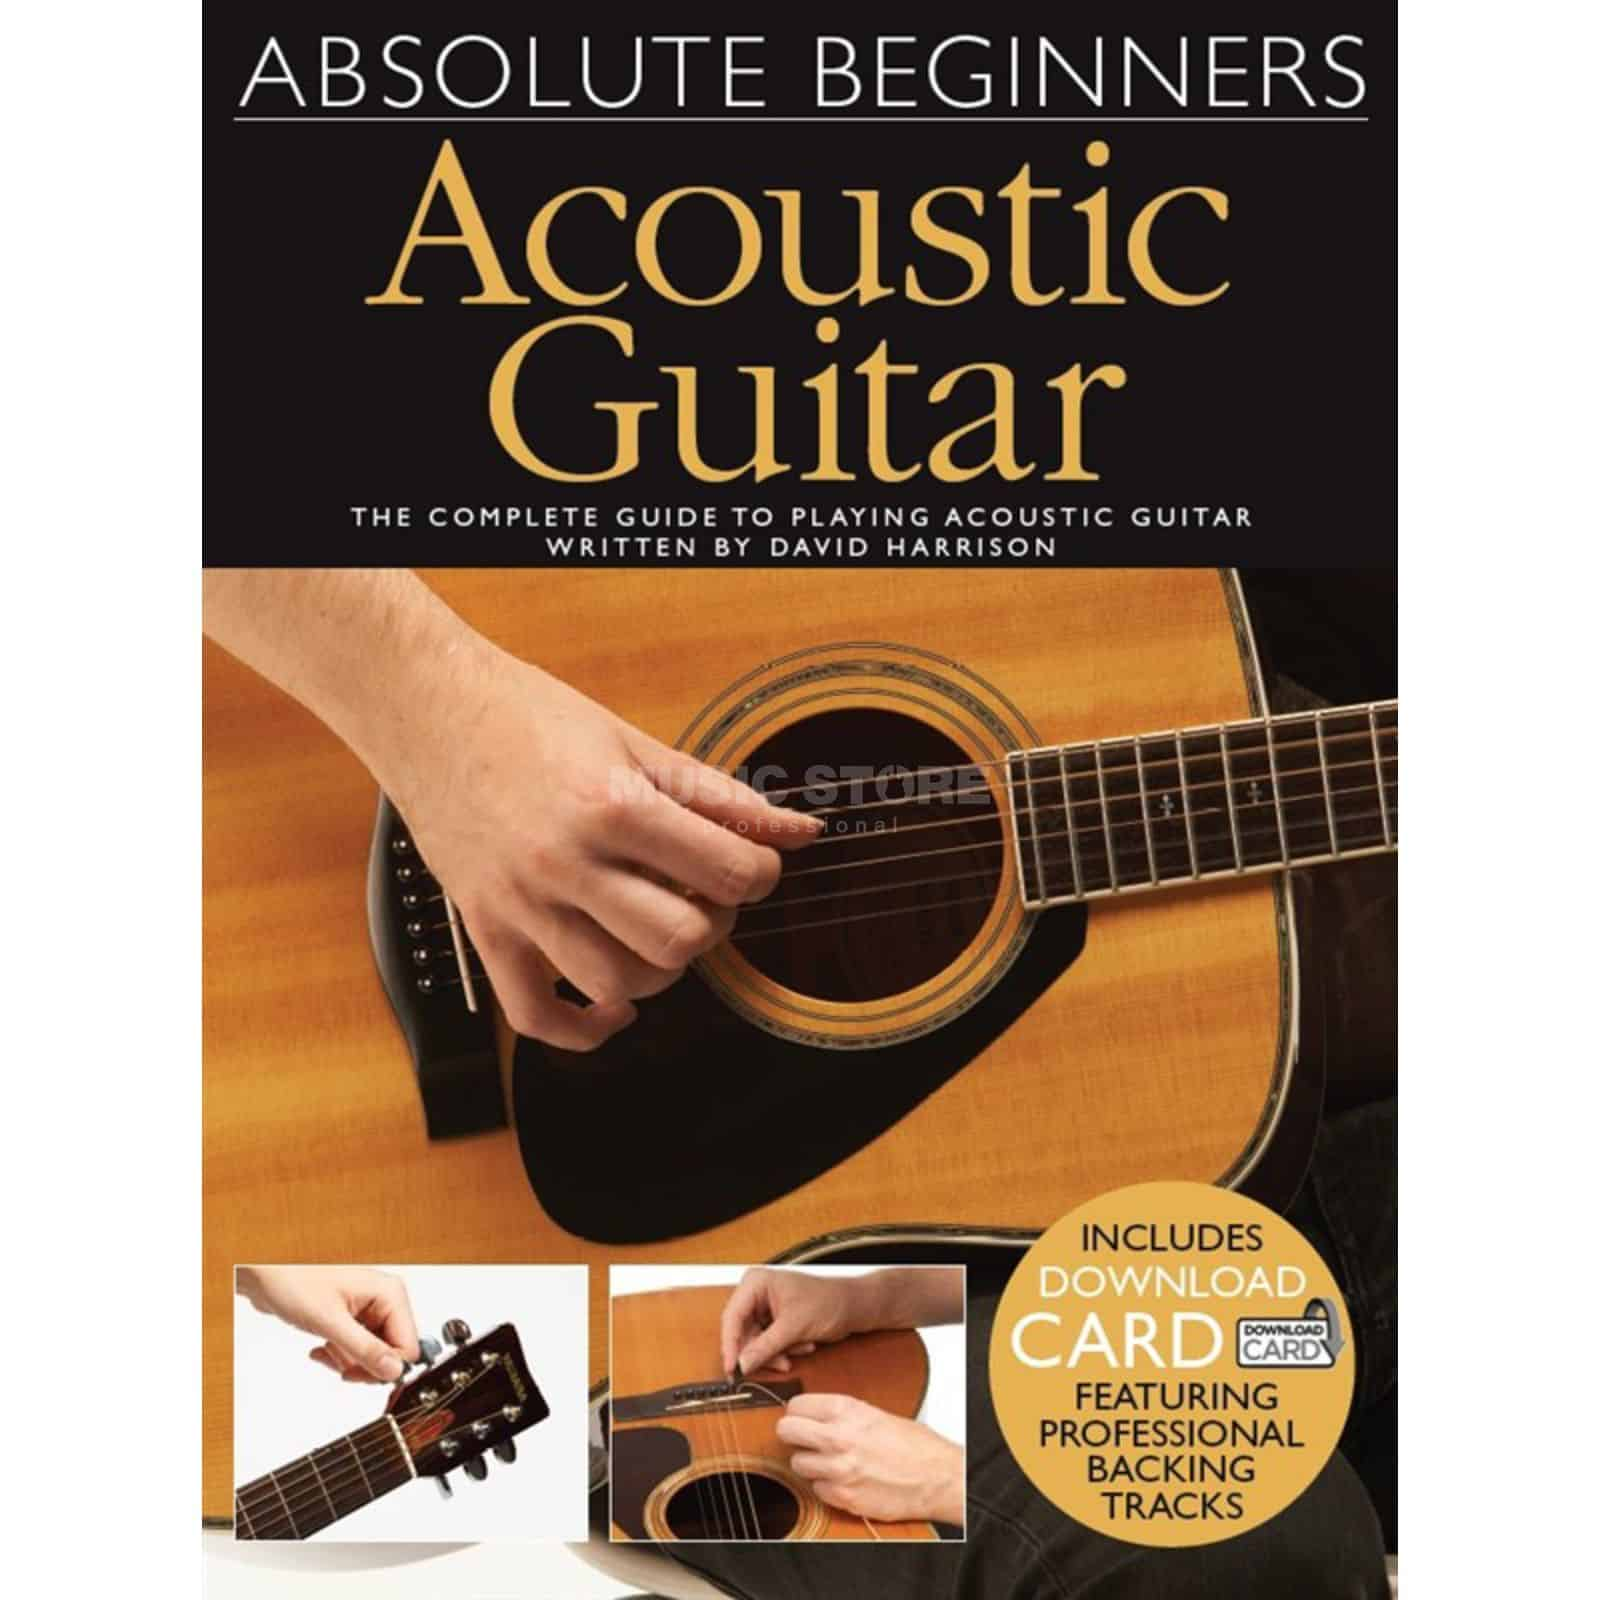 Absolute Beginners Acoustic Guitar Bk/Dcard